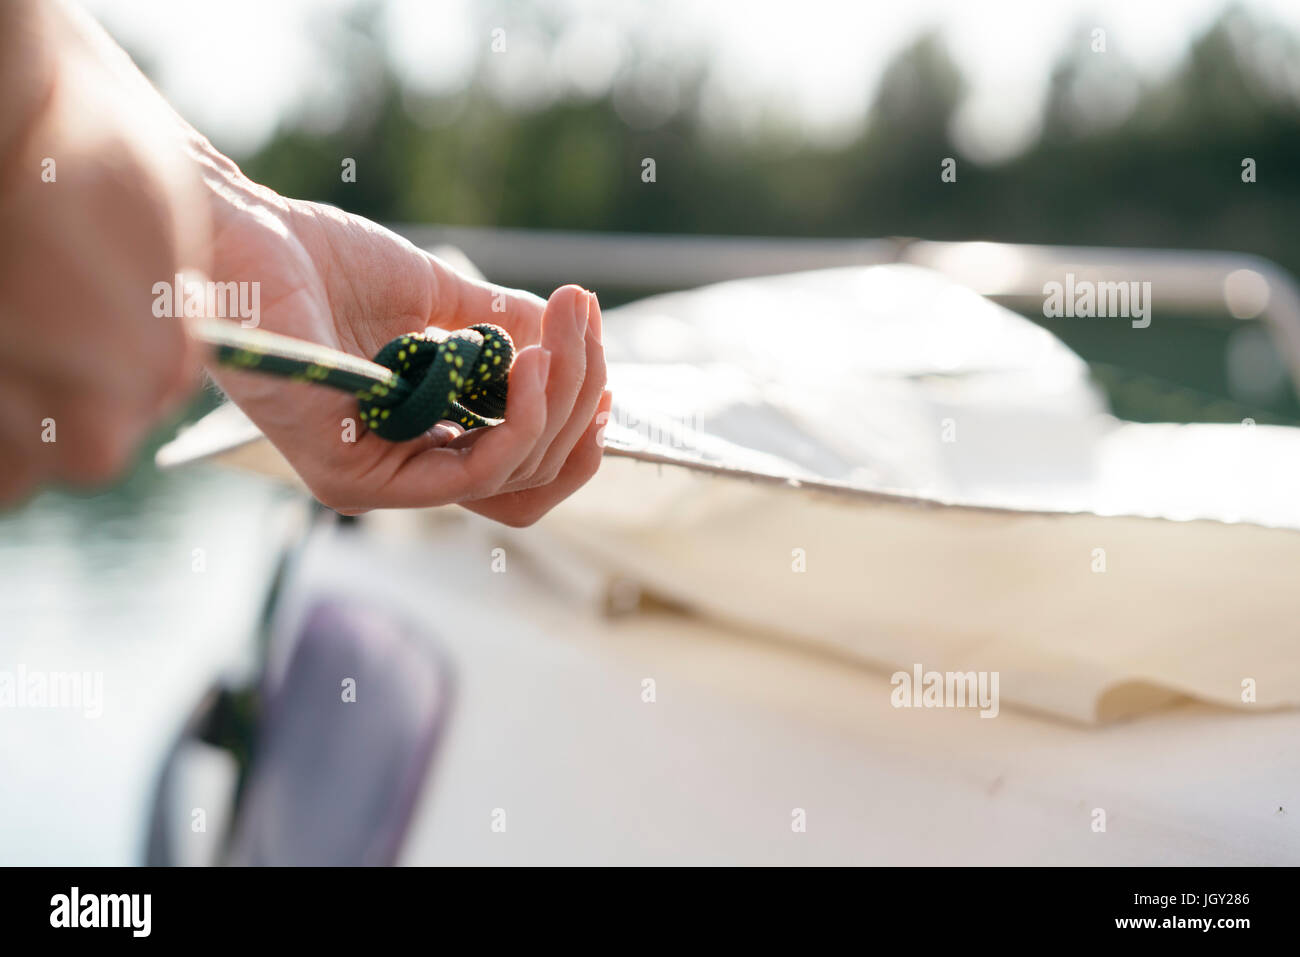 Man on sailing boat, hoisting sail, close-up - Stock Image